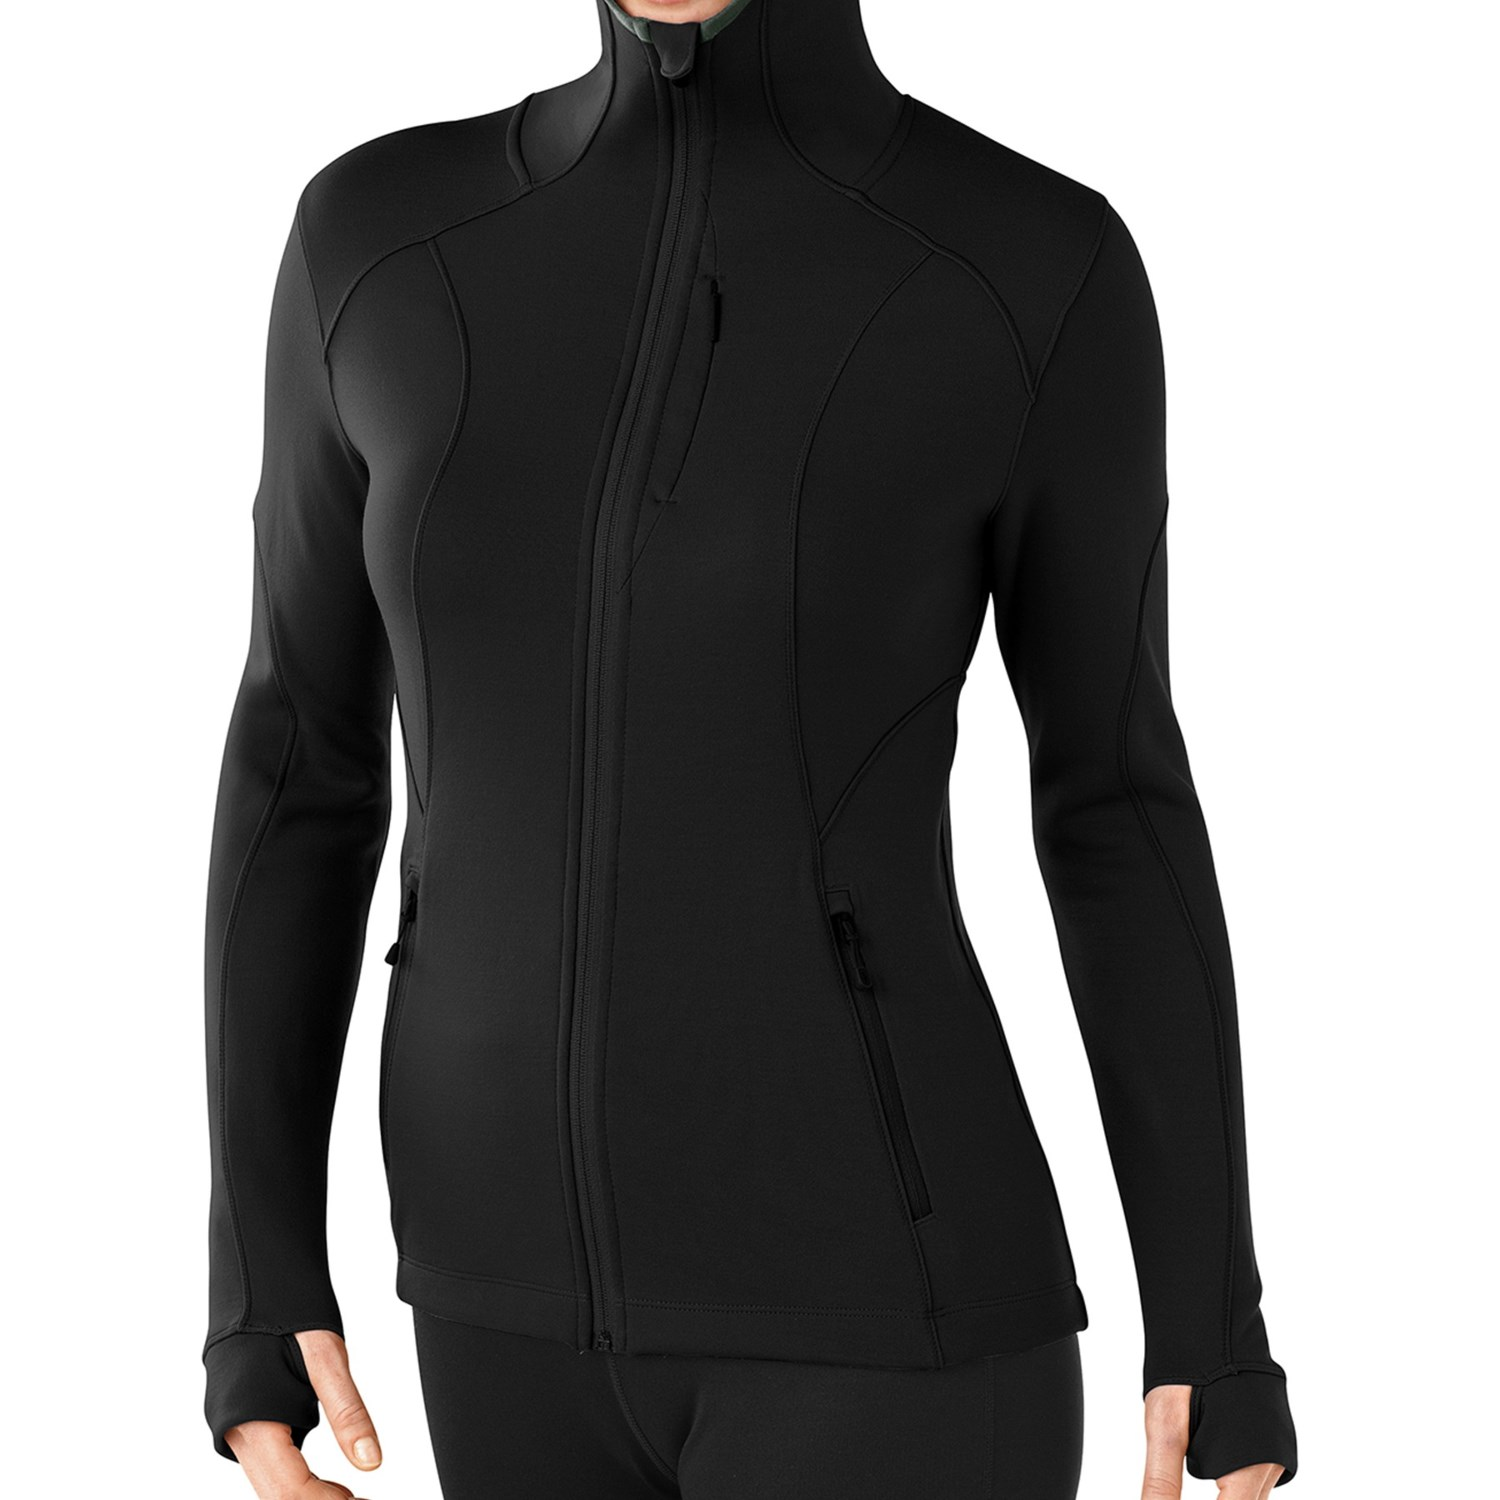 Smartwool 2013 phd hyfi hooded shirt merino wool full for Merino wool shirt womens